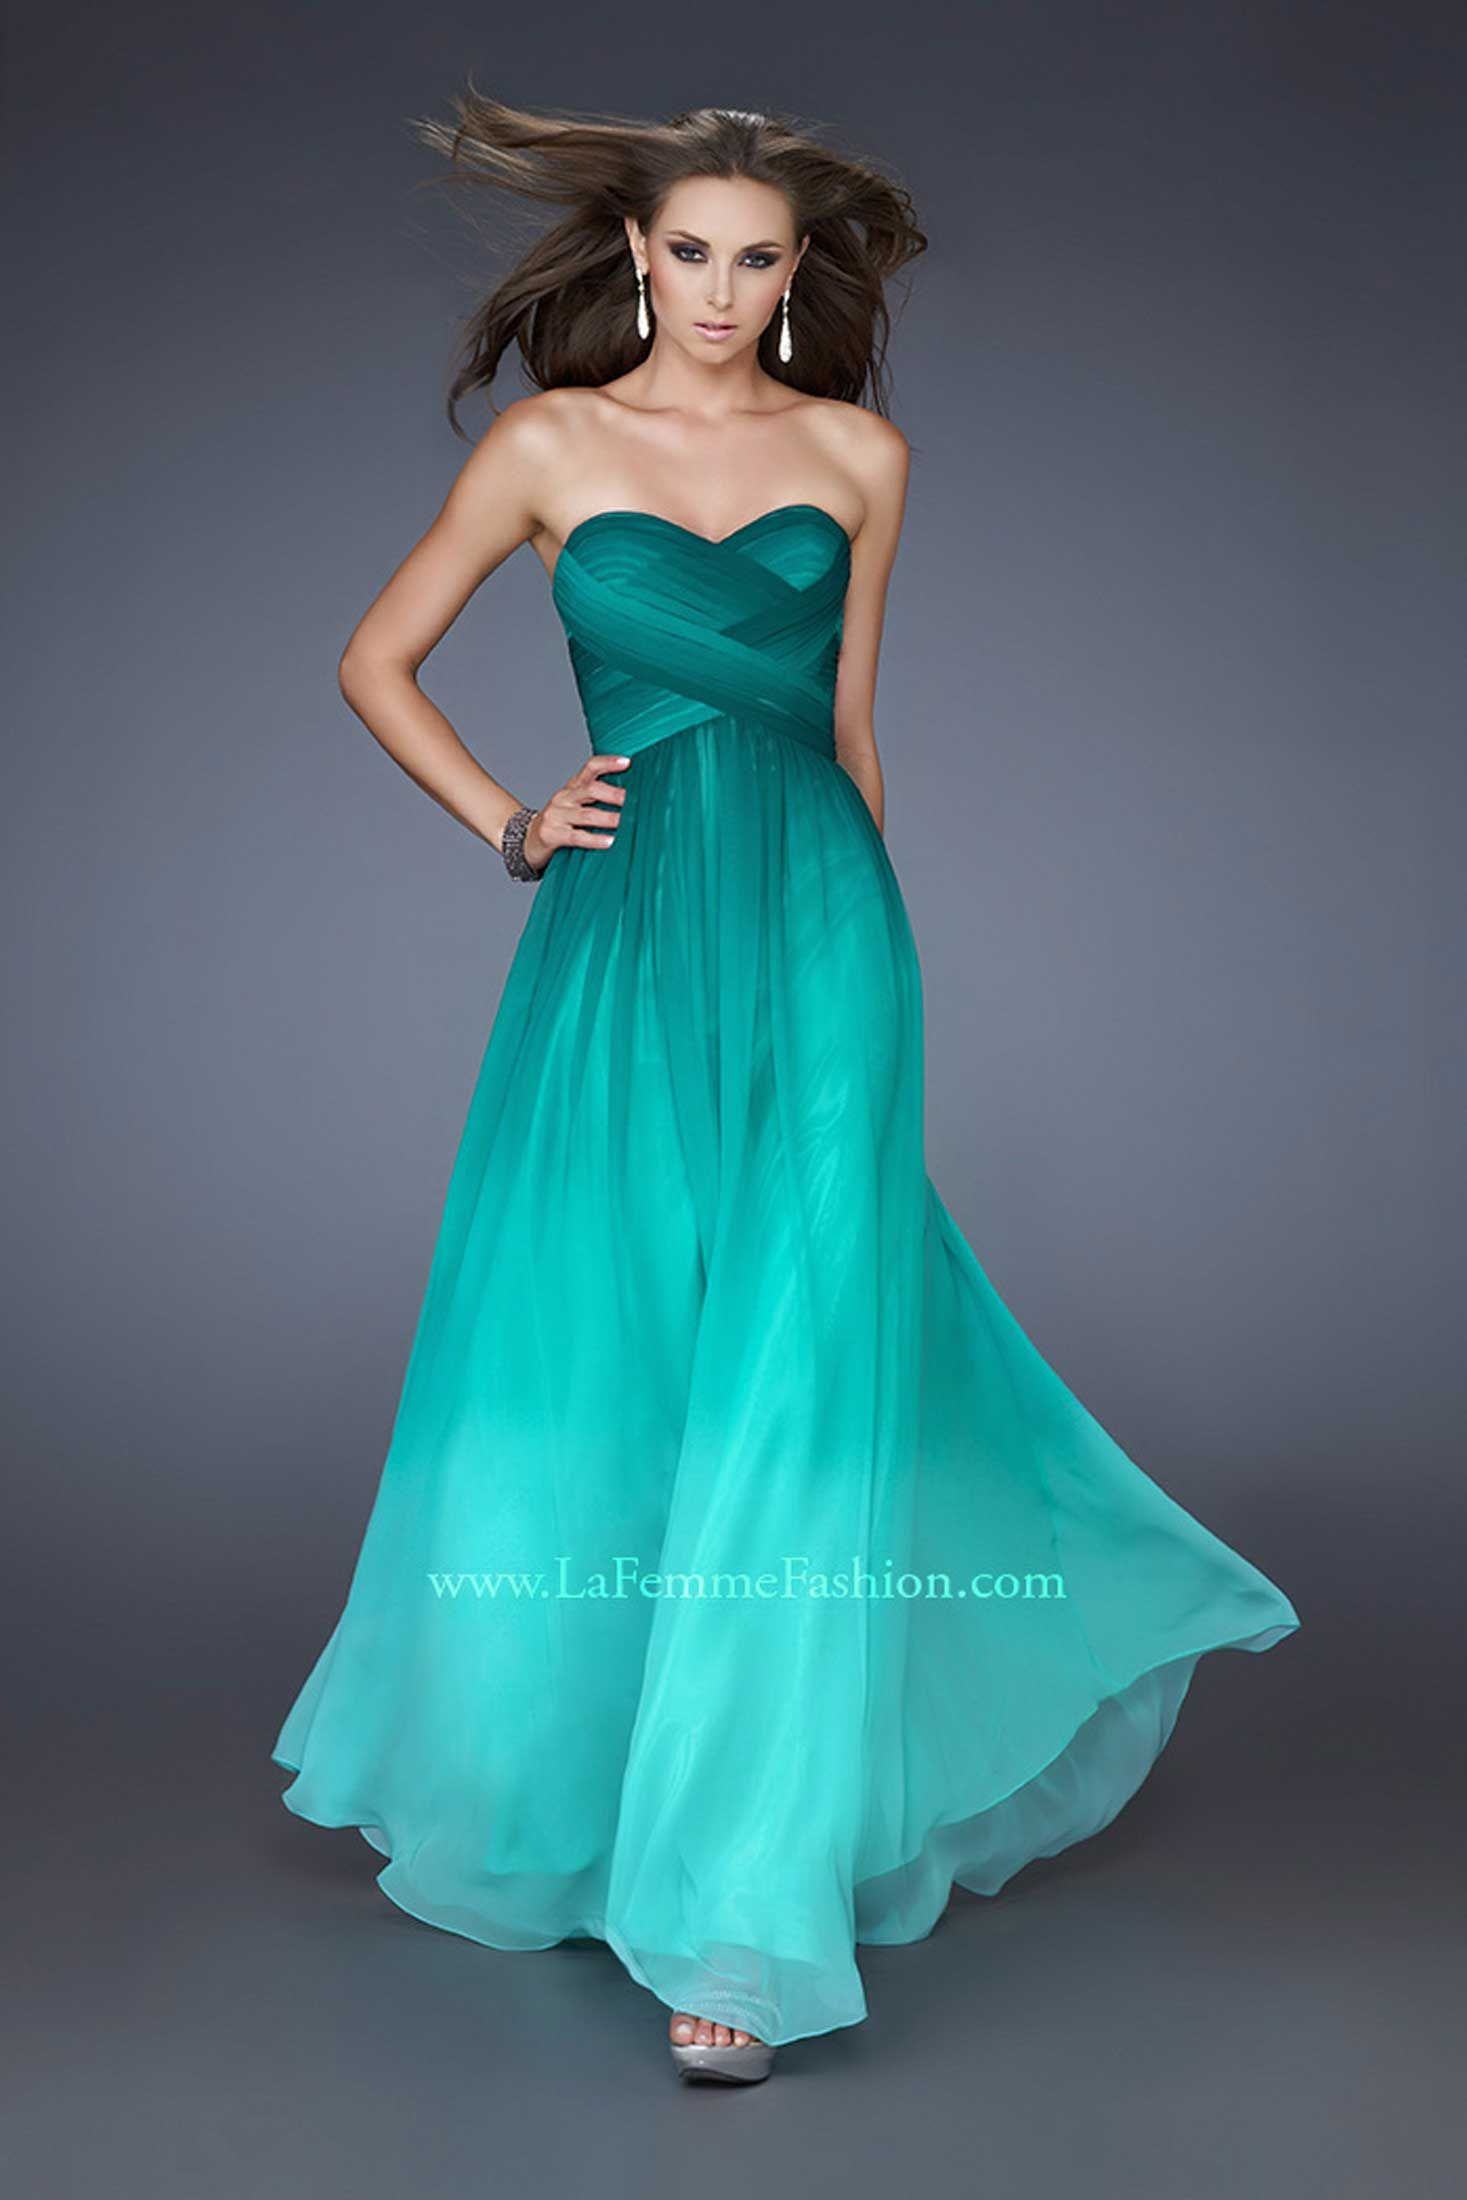 Prom Dresses - Prom Gowns - CBsLimited.com | hot on the spot ...